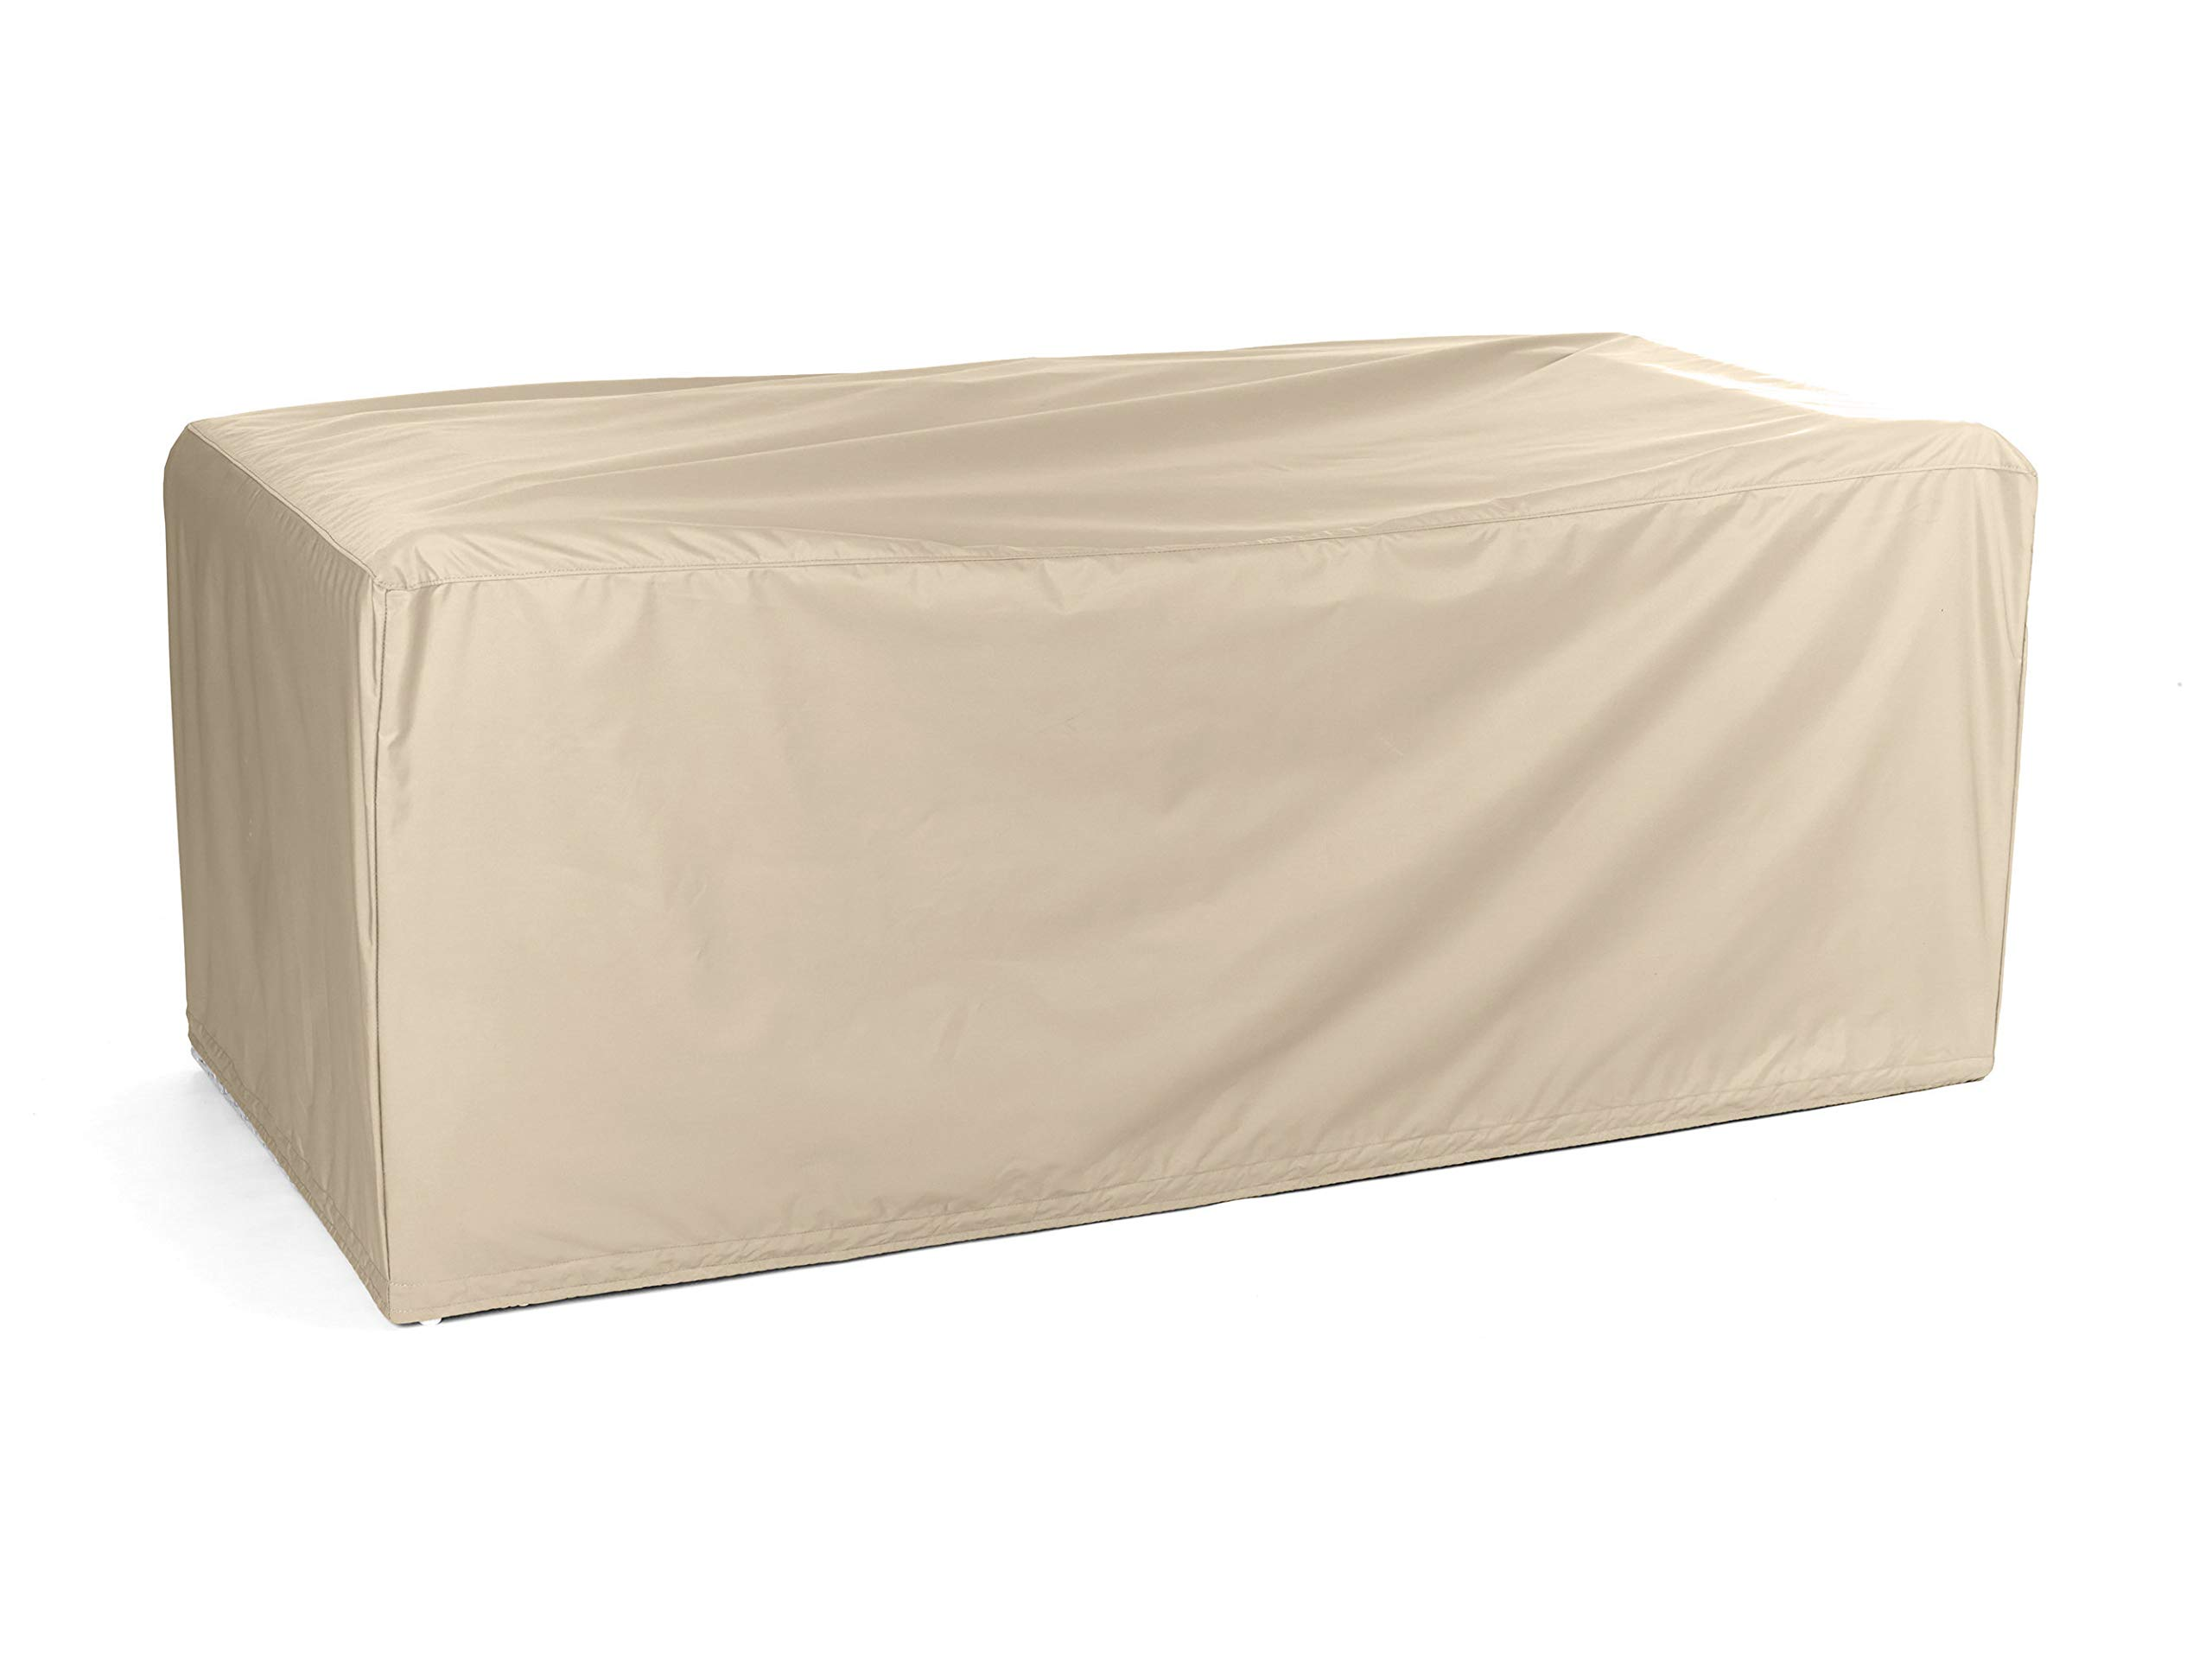 Covermates – Modular Sectional Sofa Cover – 84W x 38D x 35H – Elite Collection – 3 YR Warranty – Year Around Protection - Khaki